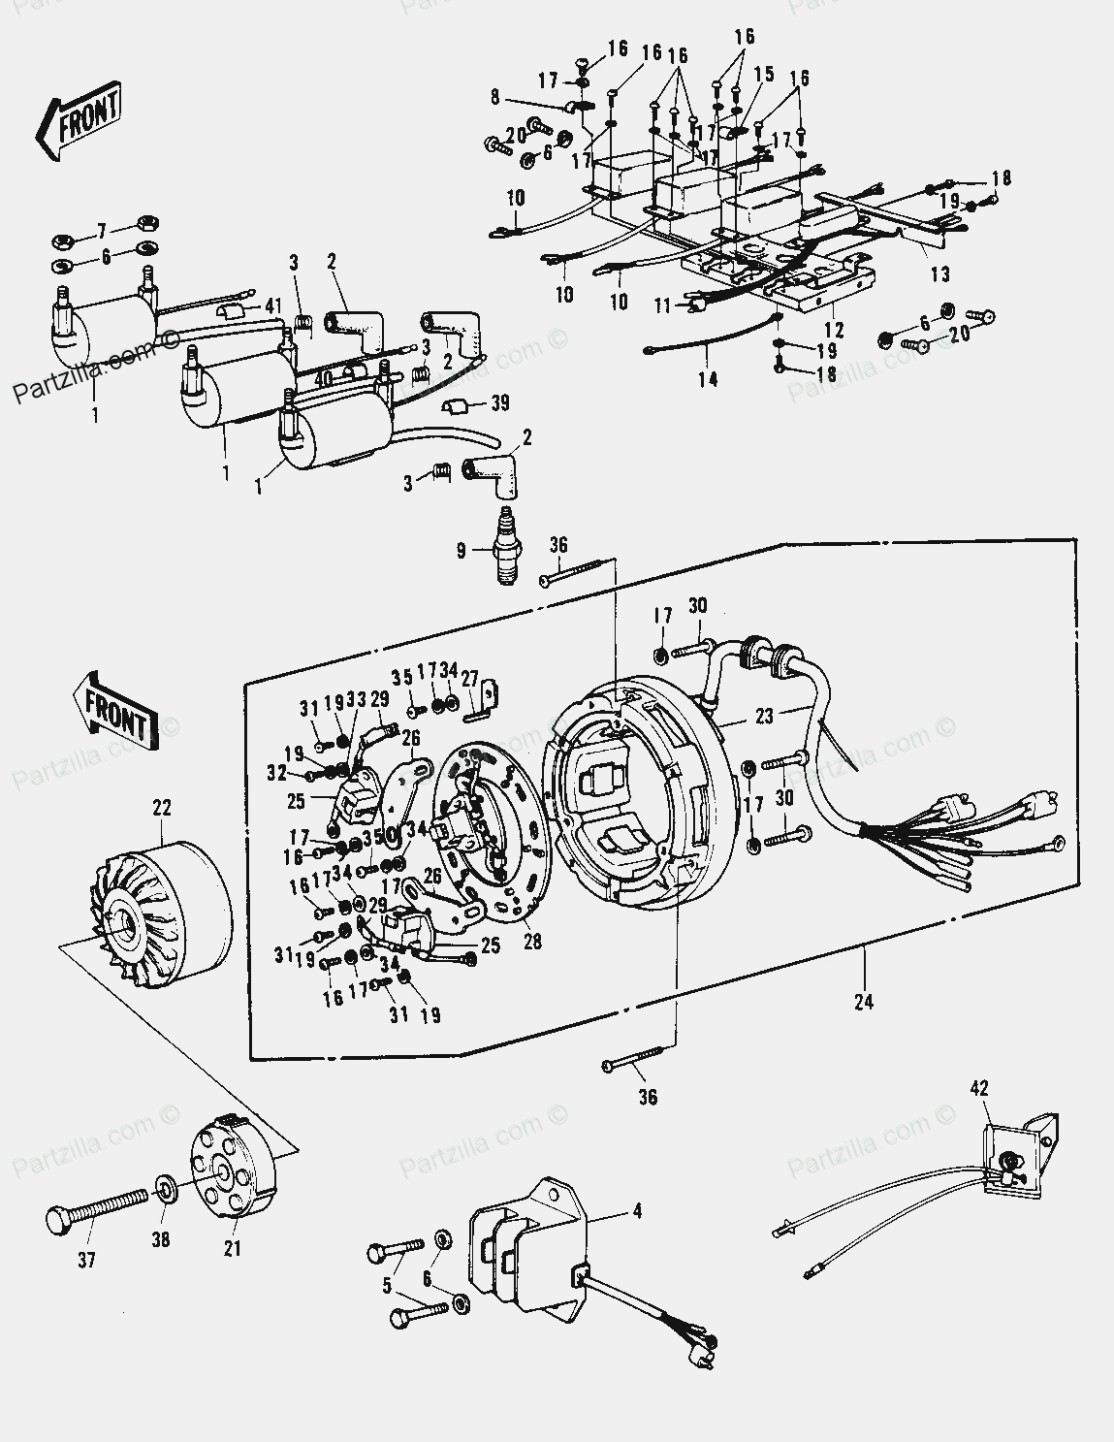 wire schematic for traeger wiring traeger wiring diagram manual e bookstexas traeger wiring diagram